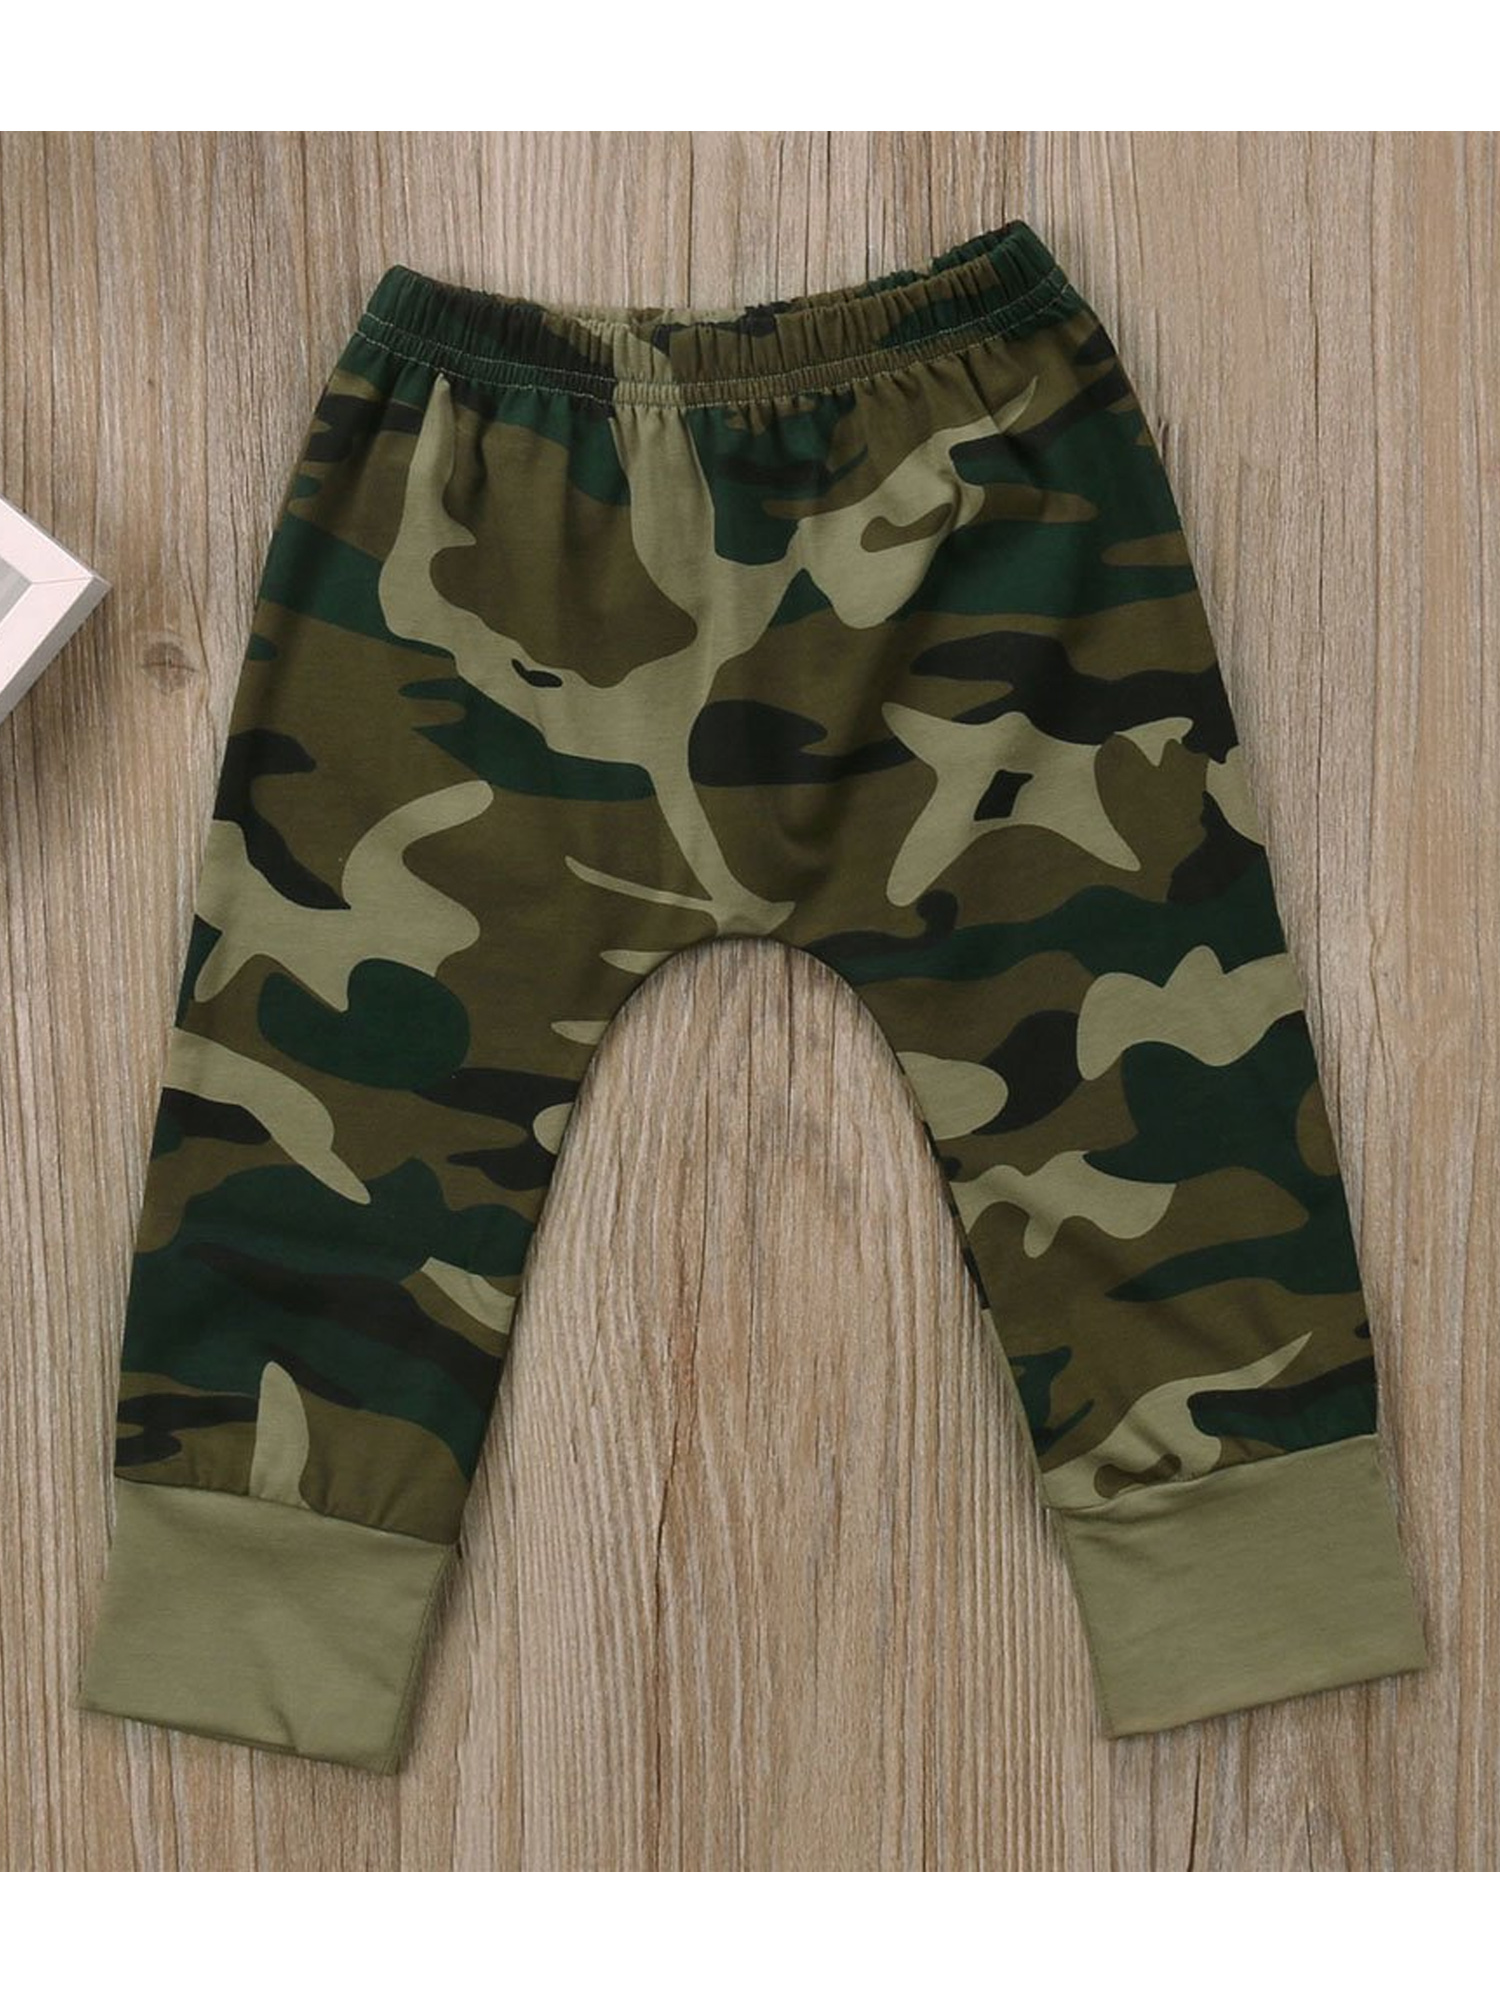 2 Styles Baby Boy Girl Camouflage Short Sleeve T-Shirt Tops+Green Long Pants Outfit Casual Outfit